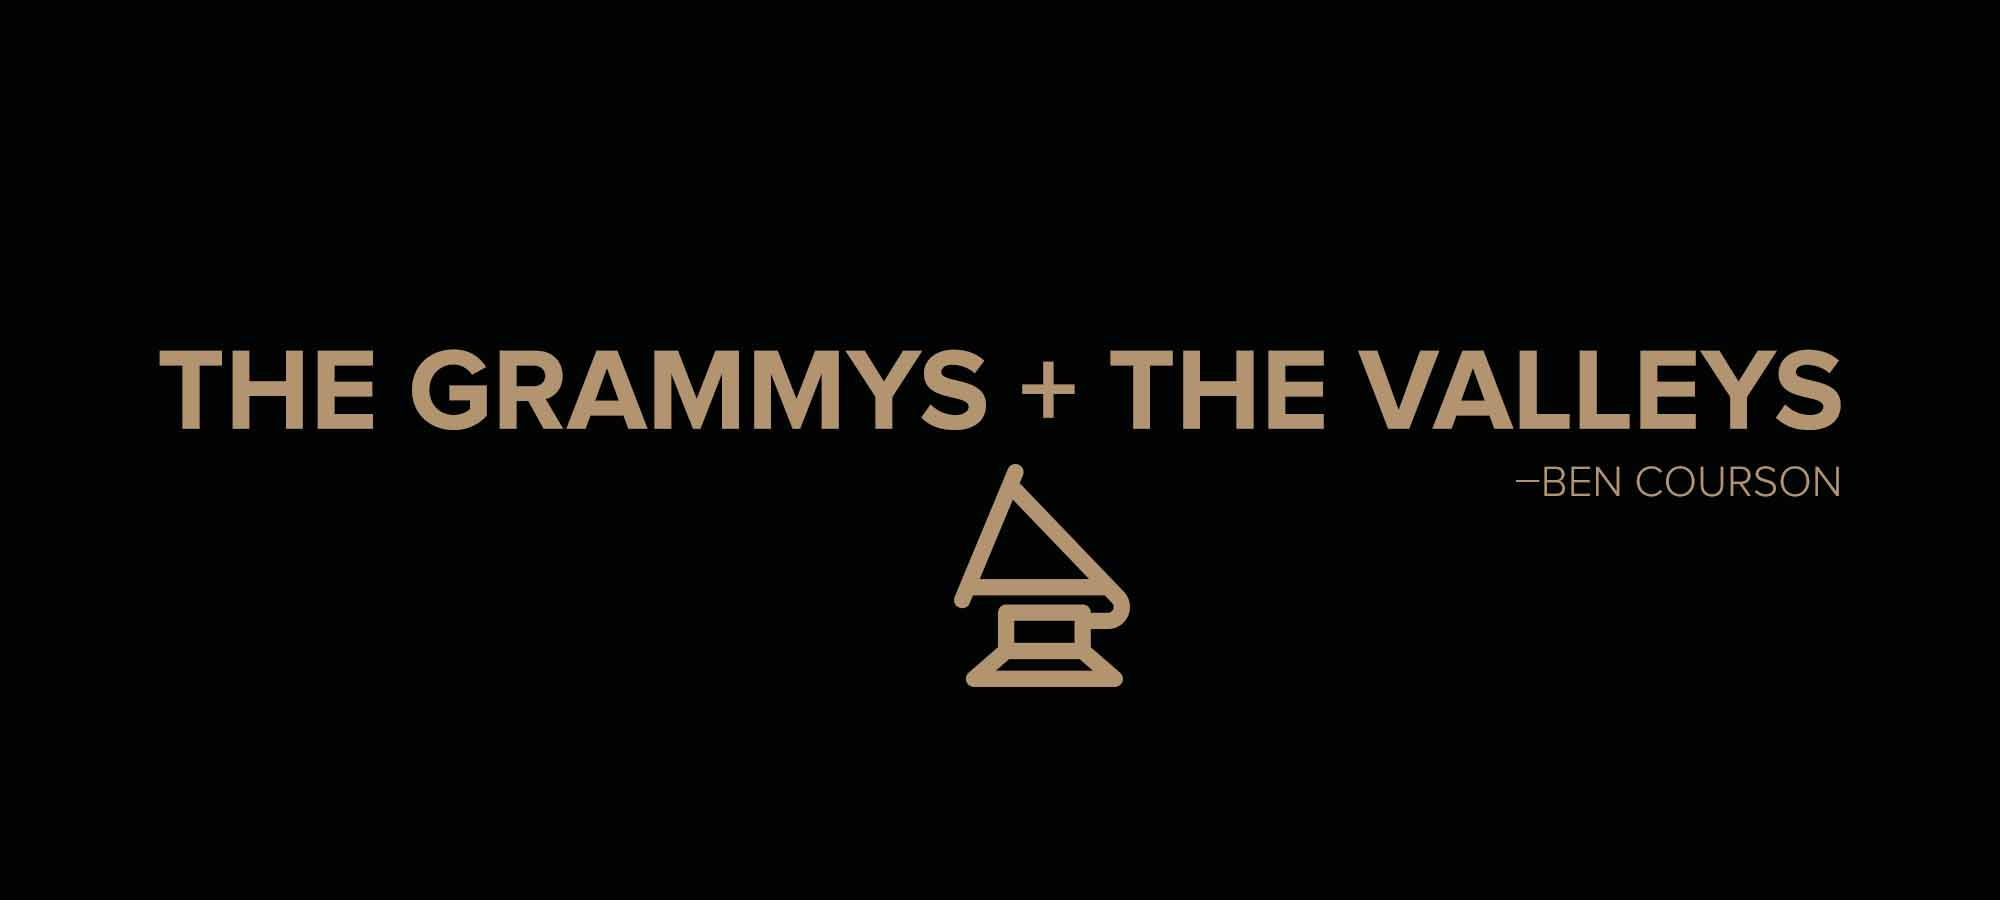 The Grammys and the Valleys